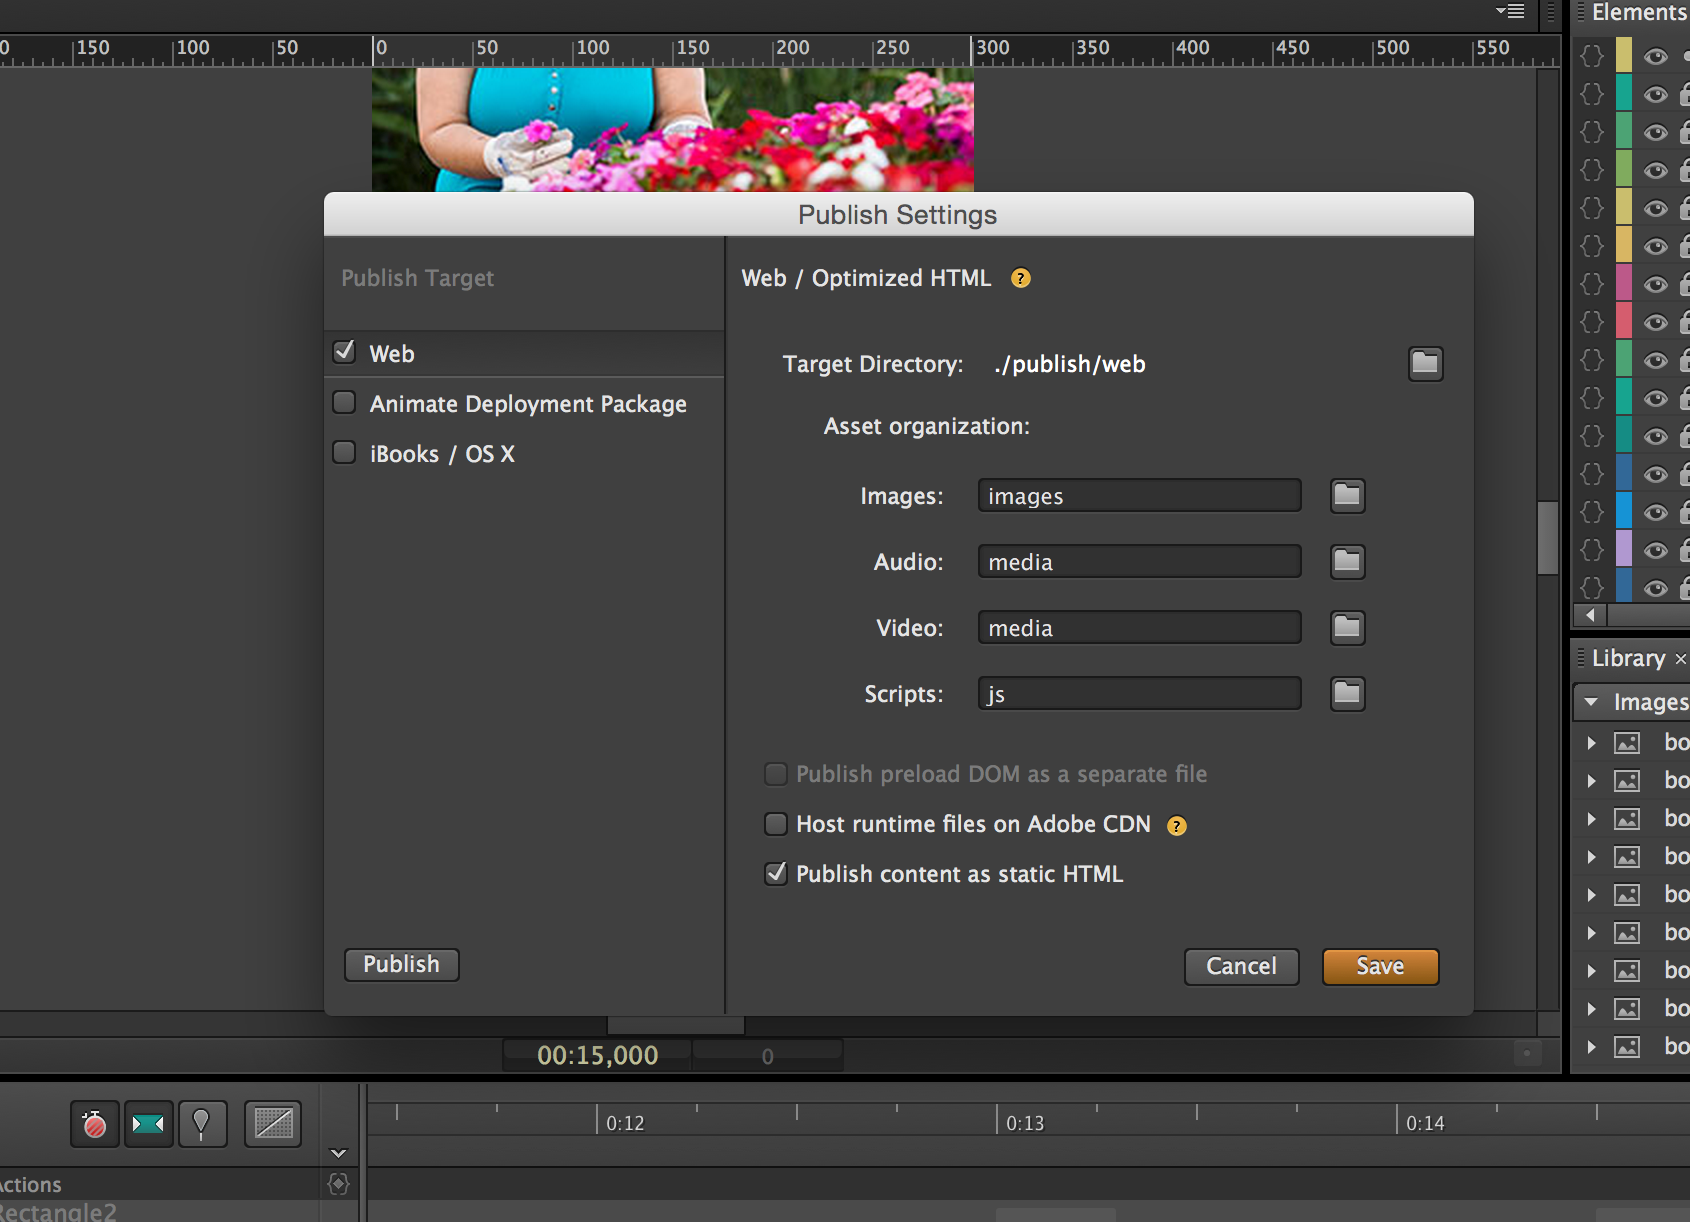 How to prepare and Adobe Edge Animate file for uploading